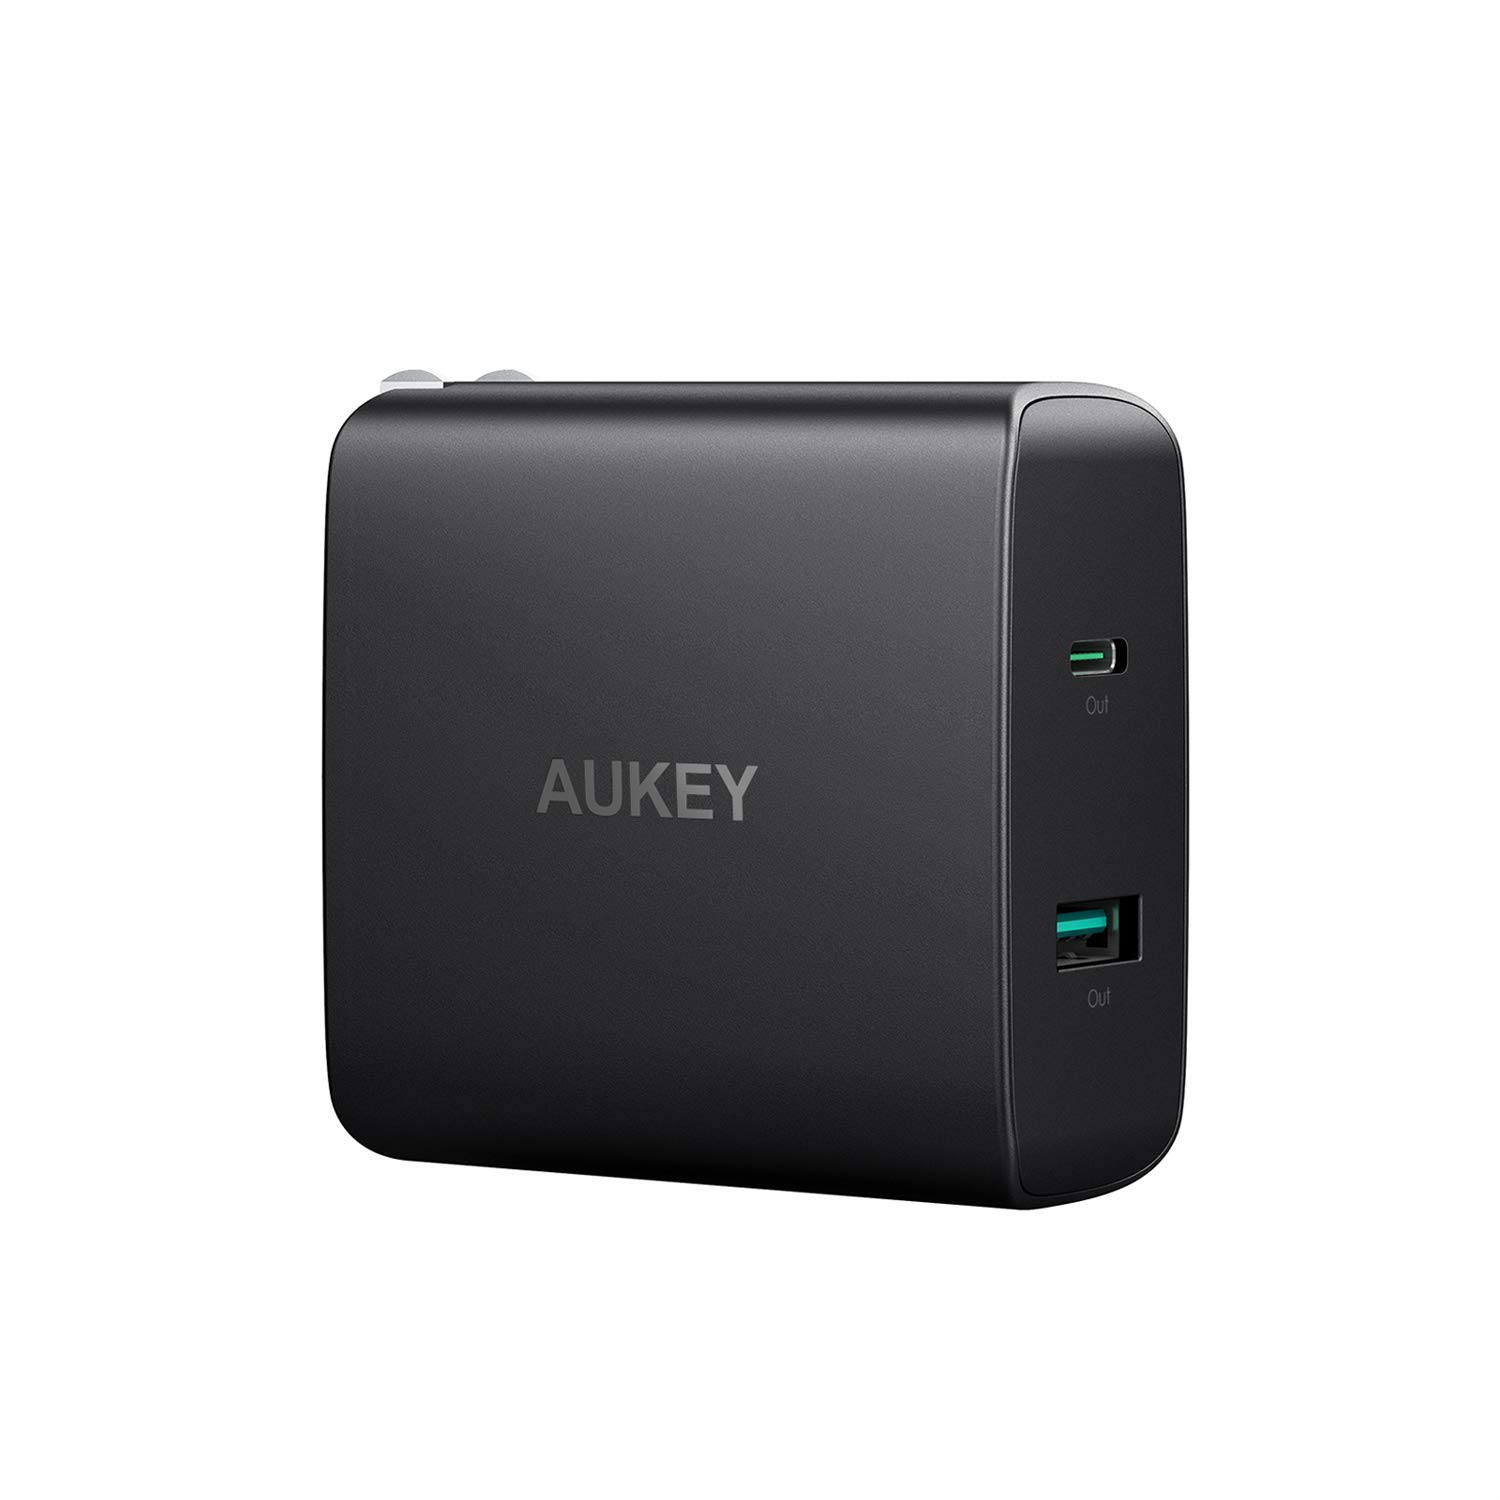 AUKEY USB C Charger with 56.5W Wall Charger, One 46W Power Delivery 3.0 & 5V / 2.1A Ports USB Wall Charger, Compatible MacBook, iPhone 11/11 Pro/Max/XS, Samsung Galaxy S8 / S8+ / Note8 and More by AUKEY